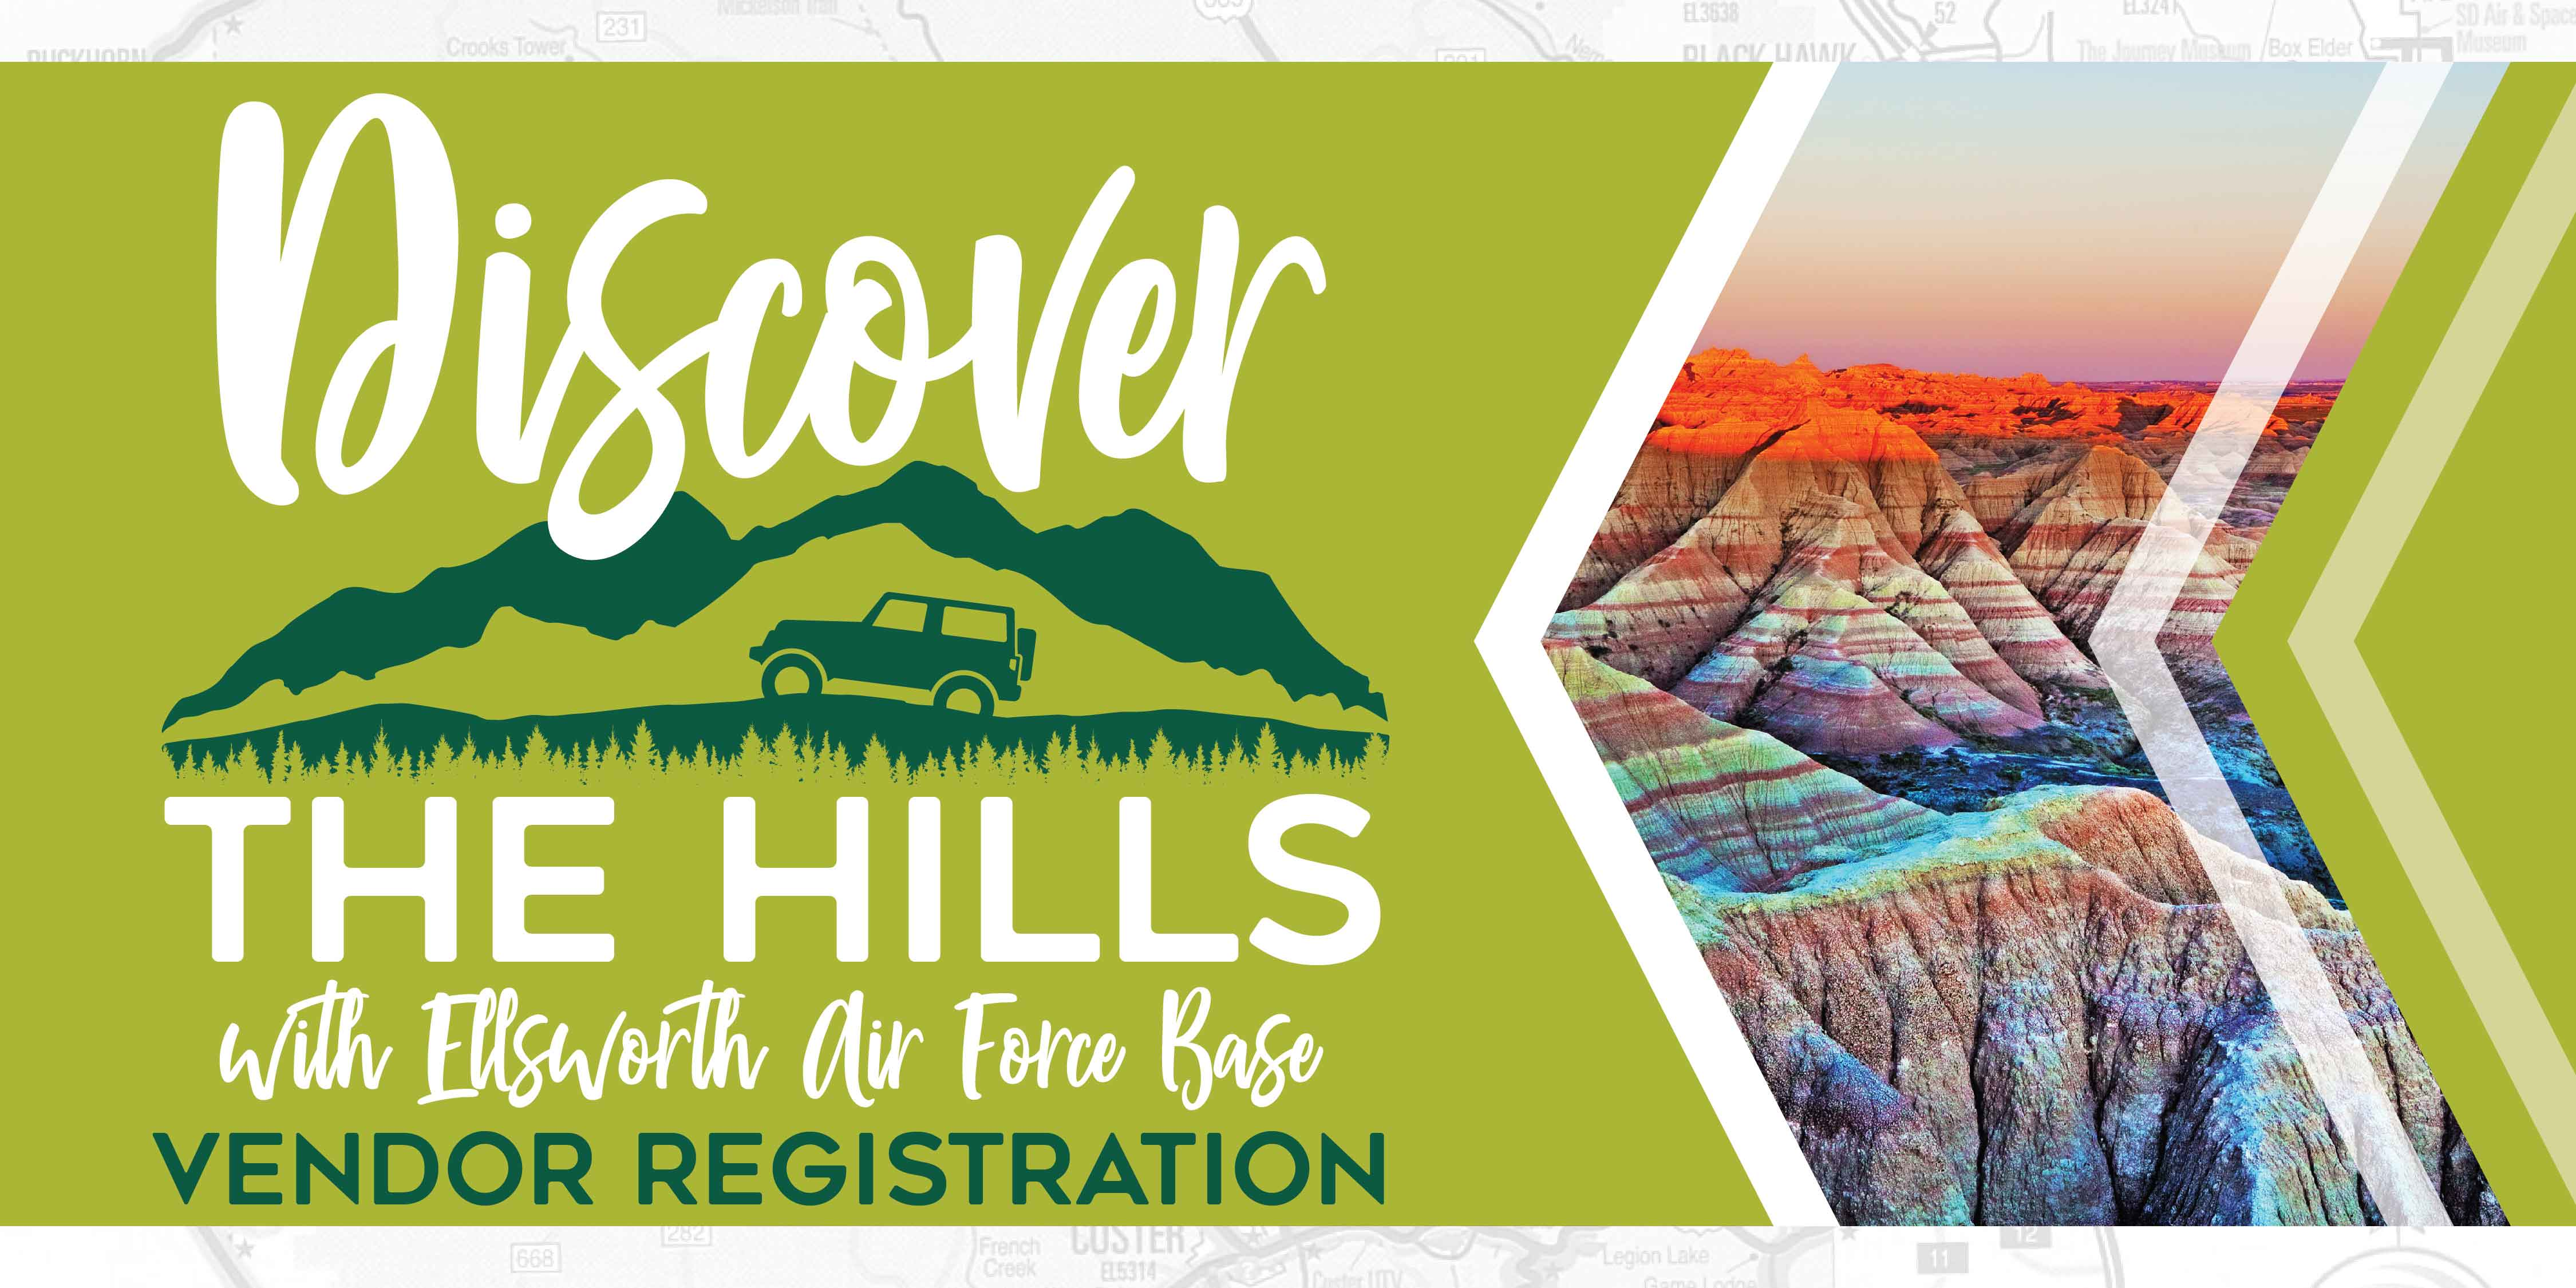 Discover the Hills 2020 eventbrite 01 web